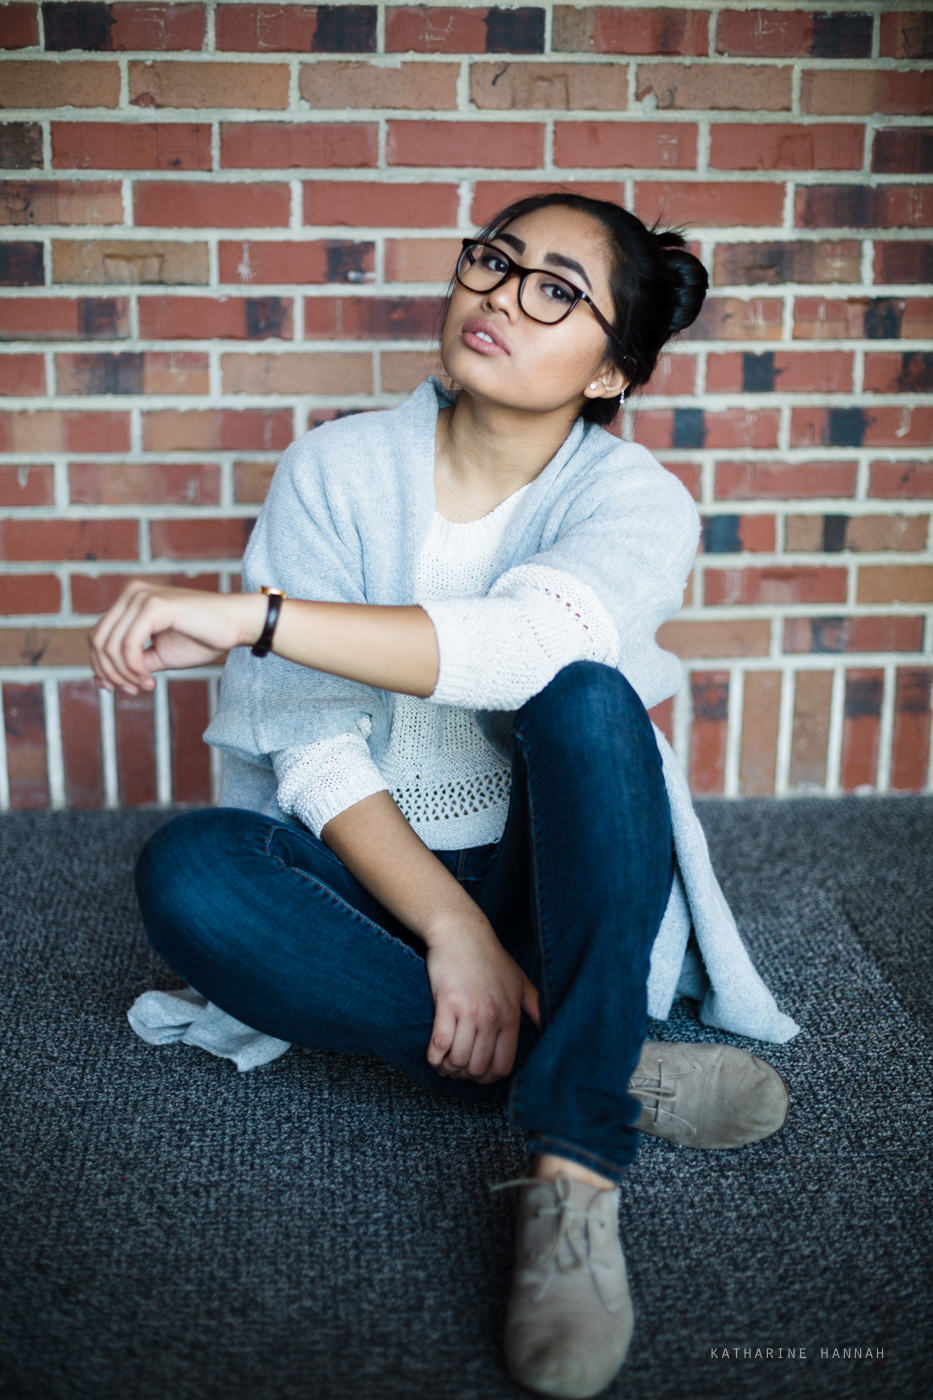 Examples of what to look out for if you wear glasses to your senior pictures